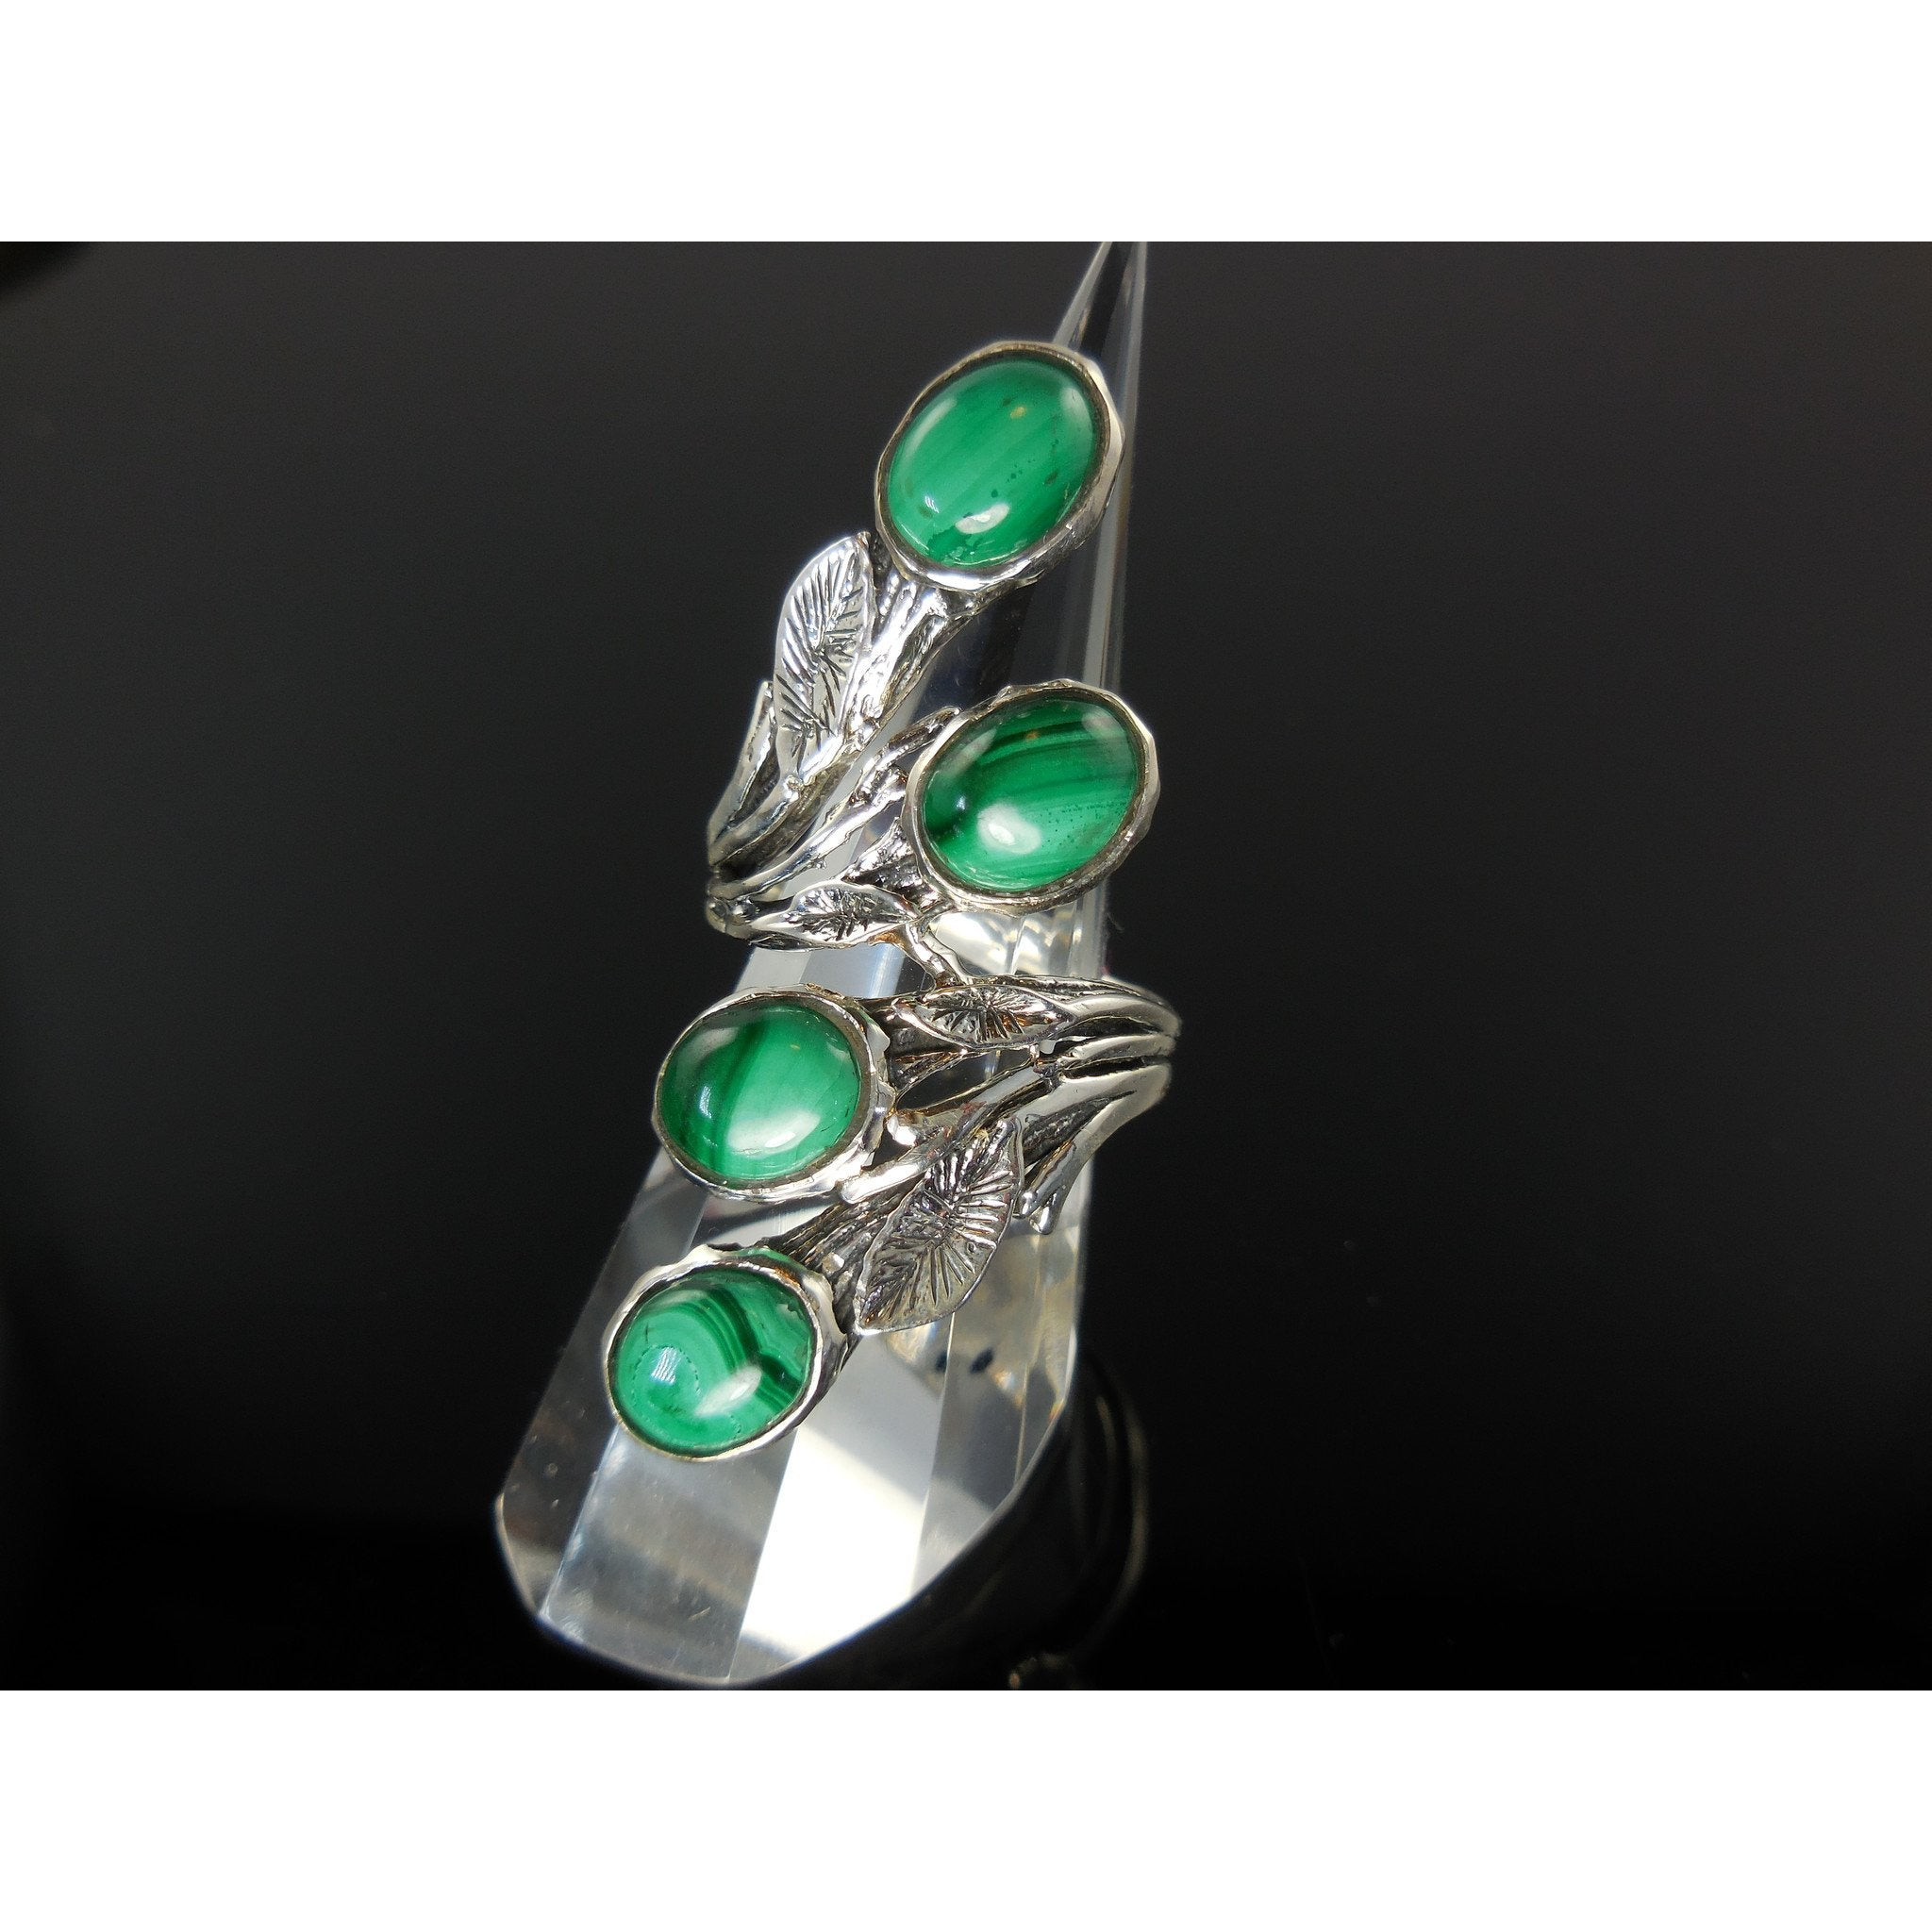 Malachite Cabochon Sterling Silver Ring - Size 8